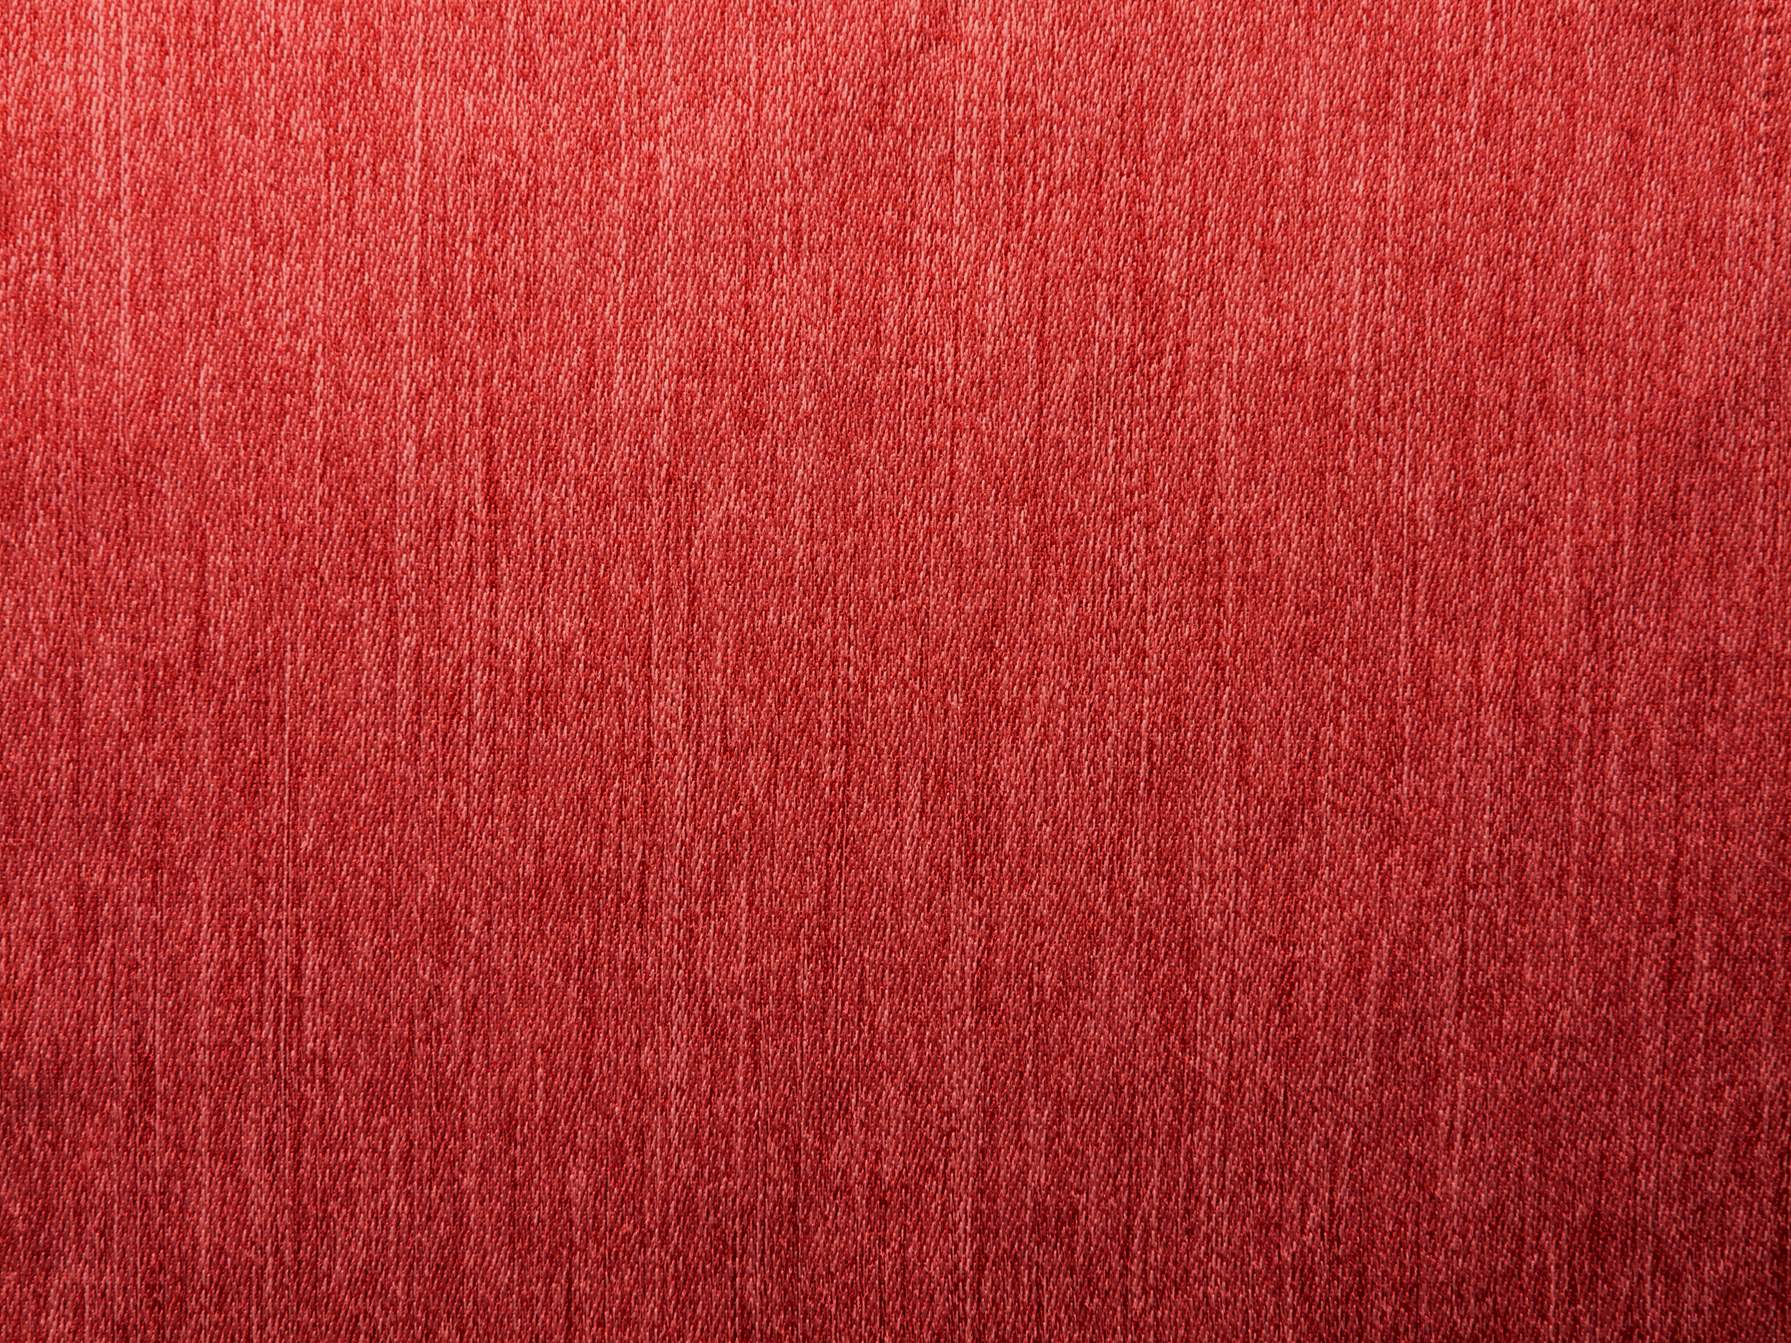 Red Canvas Texture Background - PhotoHDX